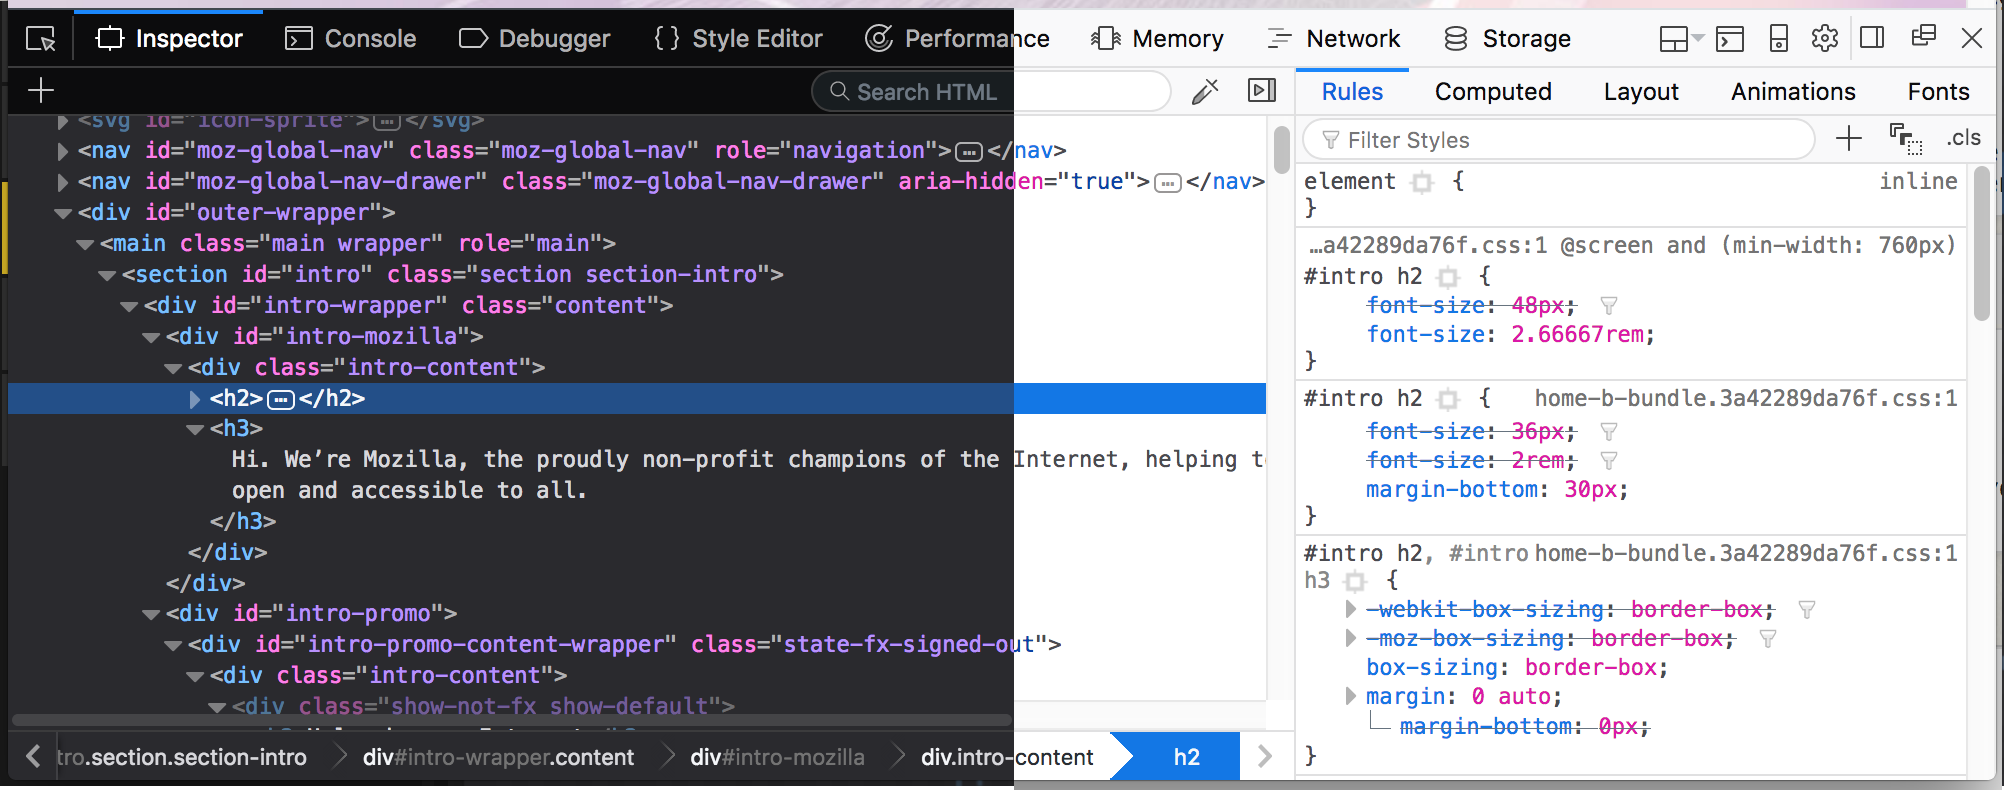 Developer Edition Devtools Update: Now with Photon UI